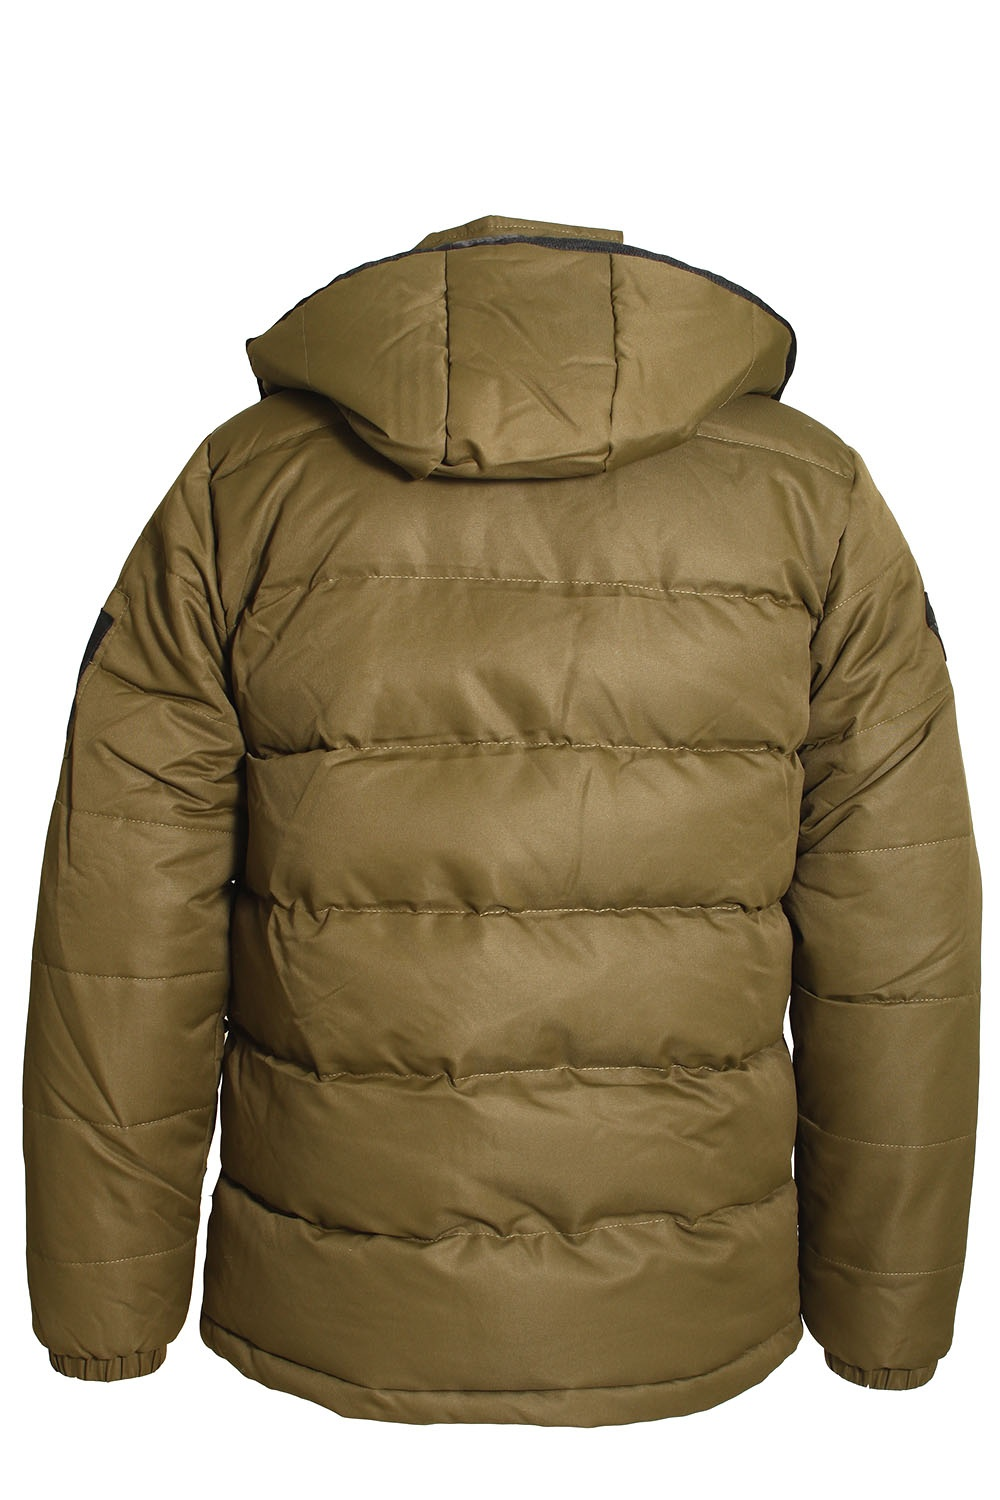 Find great deals on eBay for puffer jacket with hood. Shop with confidence.